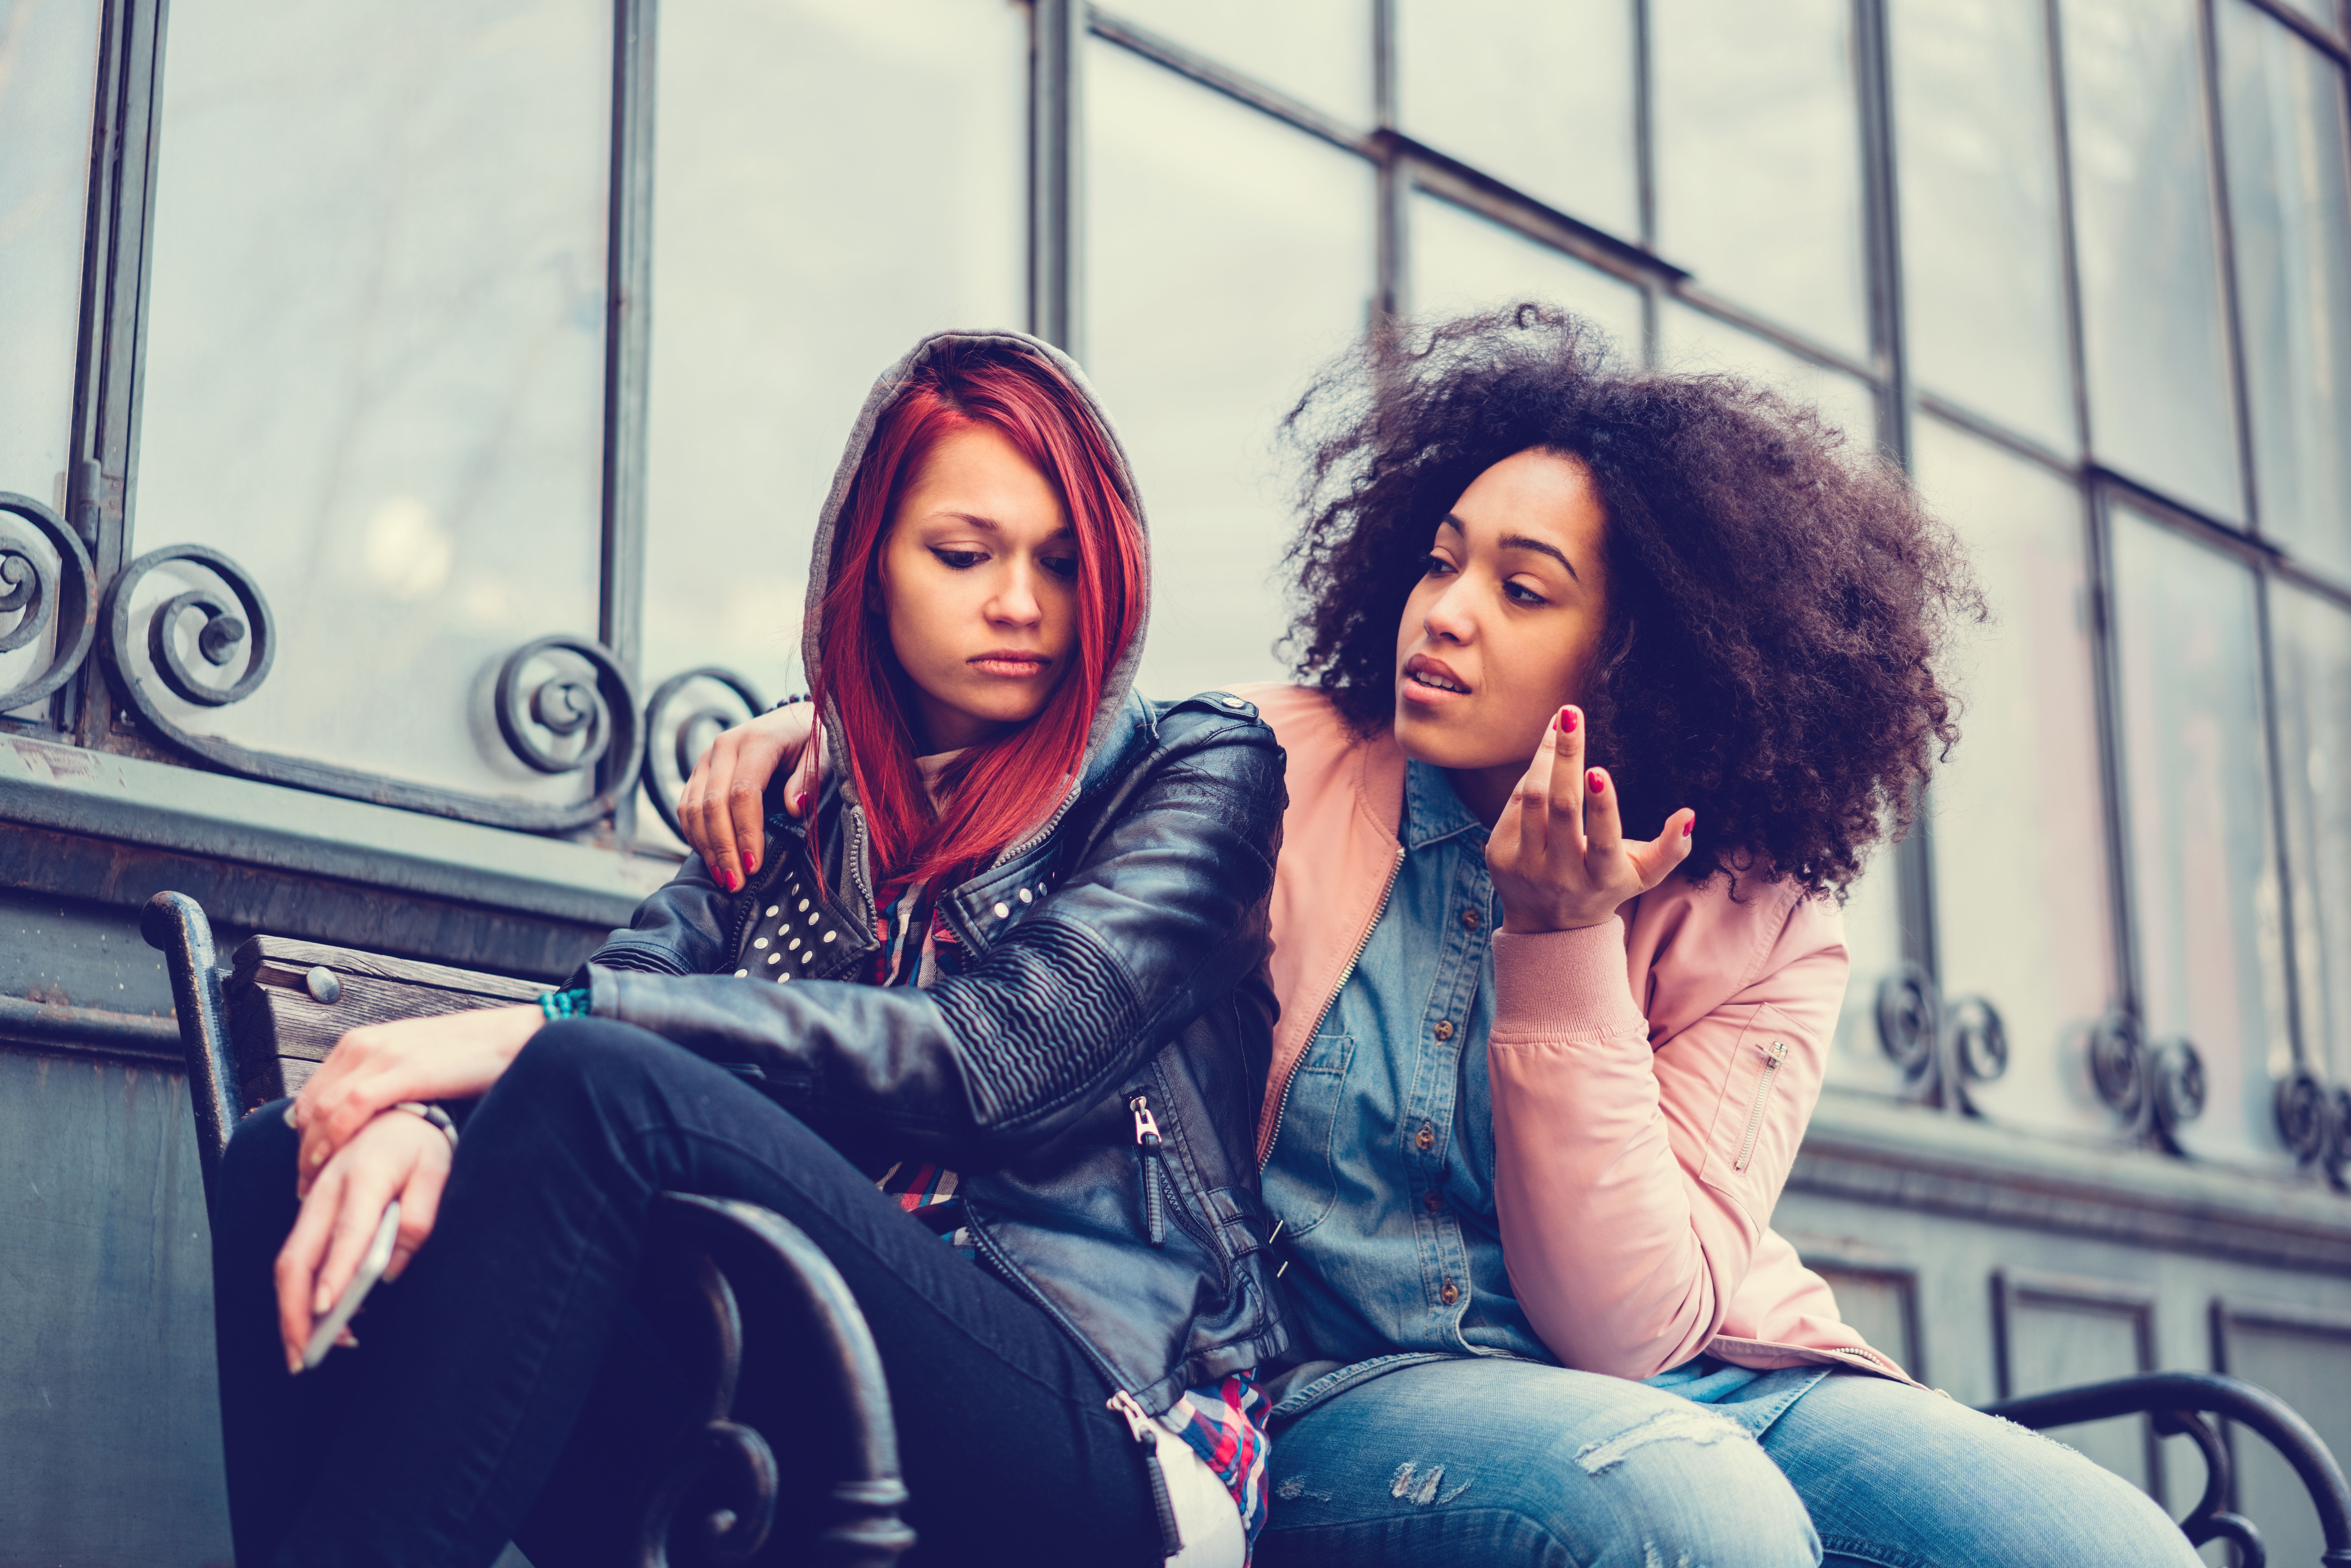 15 Things You Should Never Say To A Person With